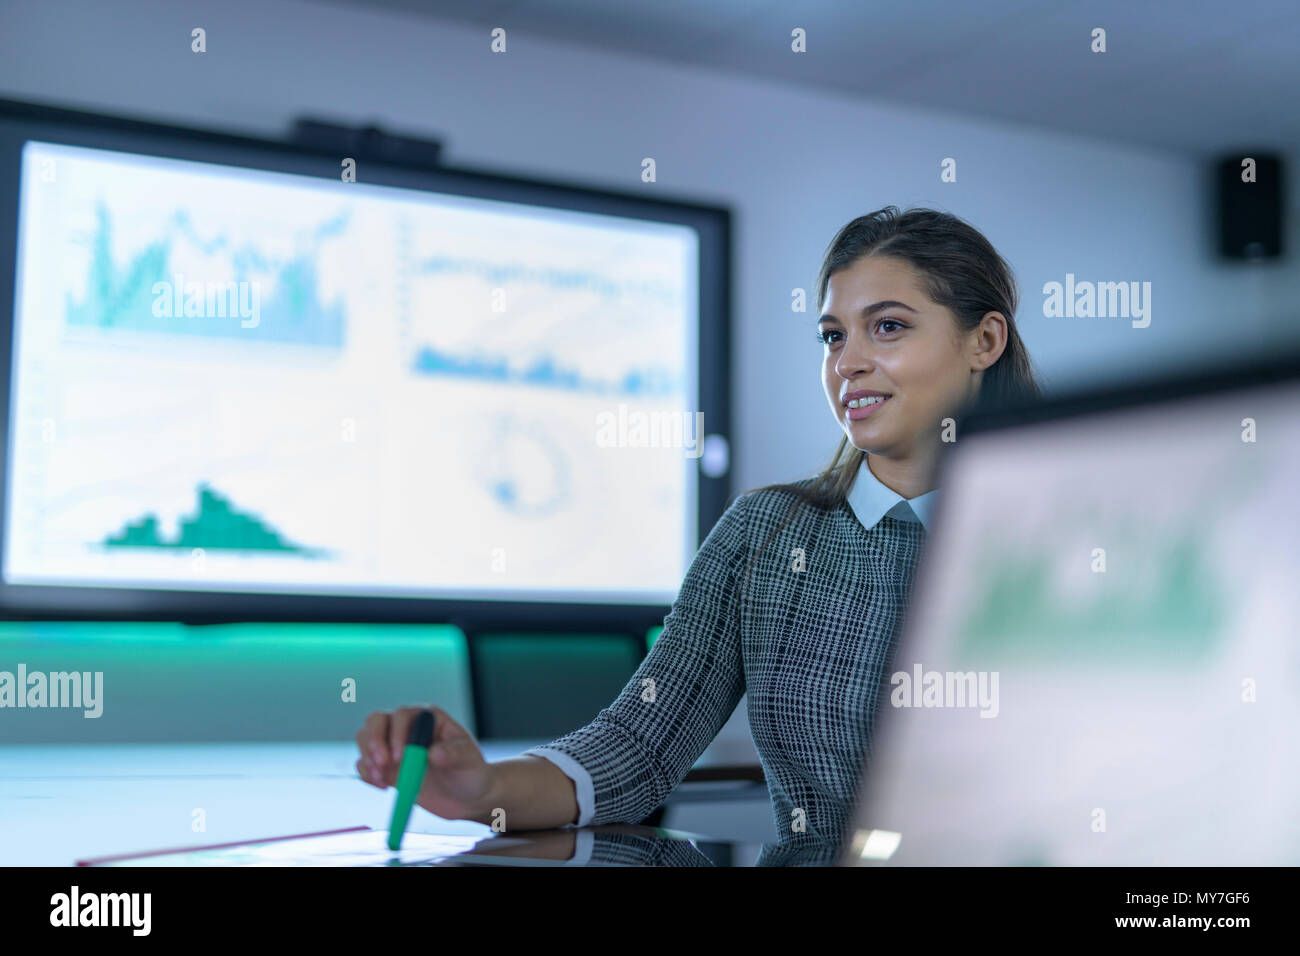 Portrait of businesswoman using laptop and interactive screens with charts and graphs in business meeting - Stock Image